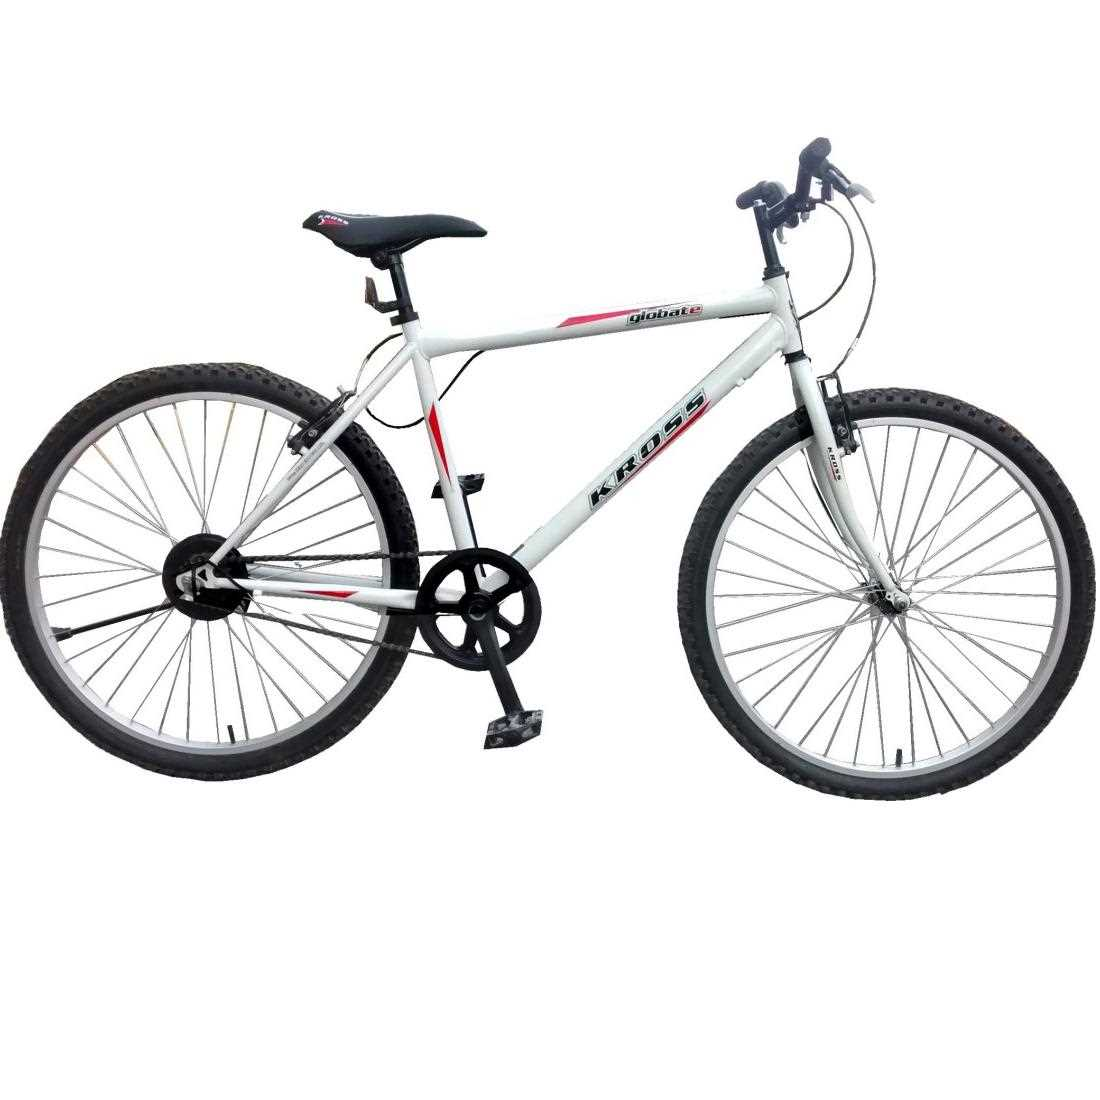 513ded1caca Kross Globate 26 Inch Single Speed Mountain Cycle Price {8 Jul 2019} | Globate  26 Inch Single Speed Reviews and Specifications